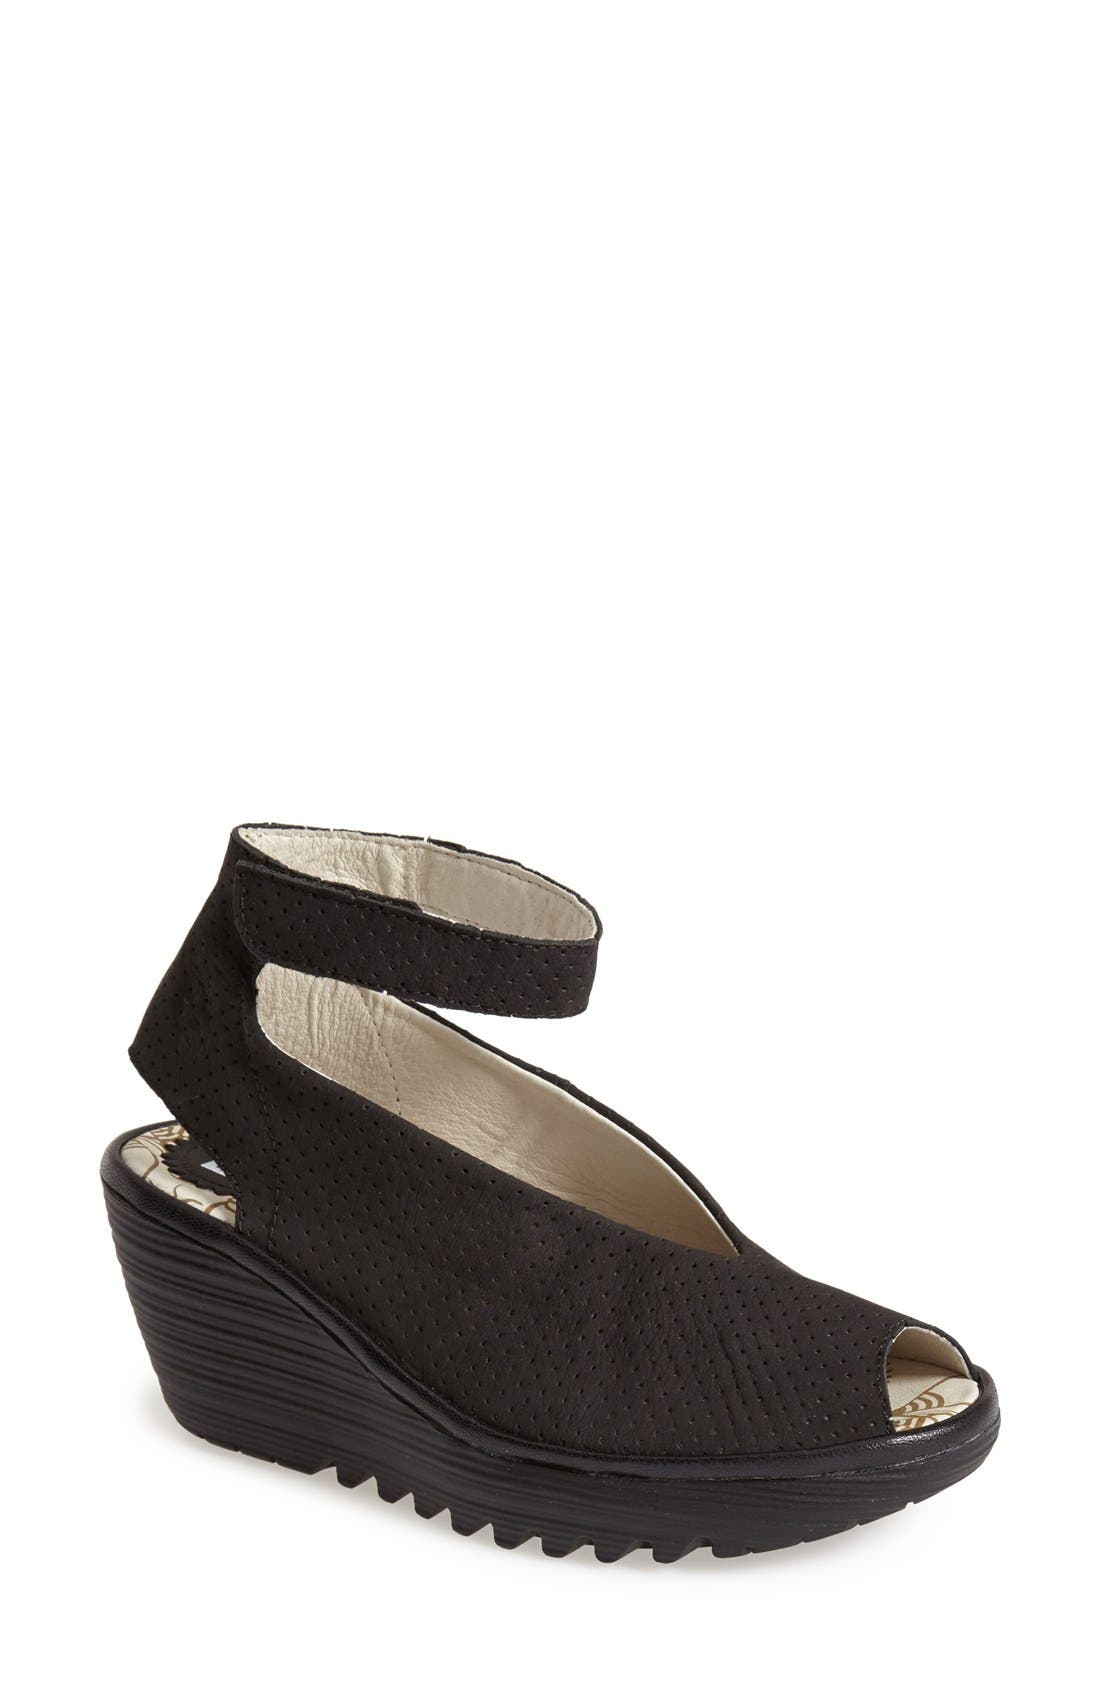 Alternate Image 1 Selected - Fly London 'Yala' Perforated Leather Sandal